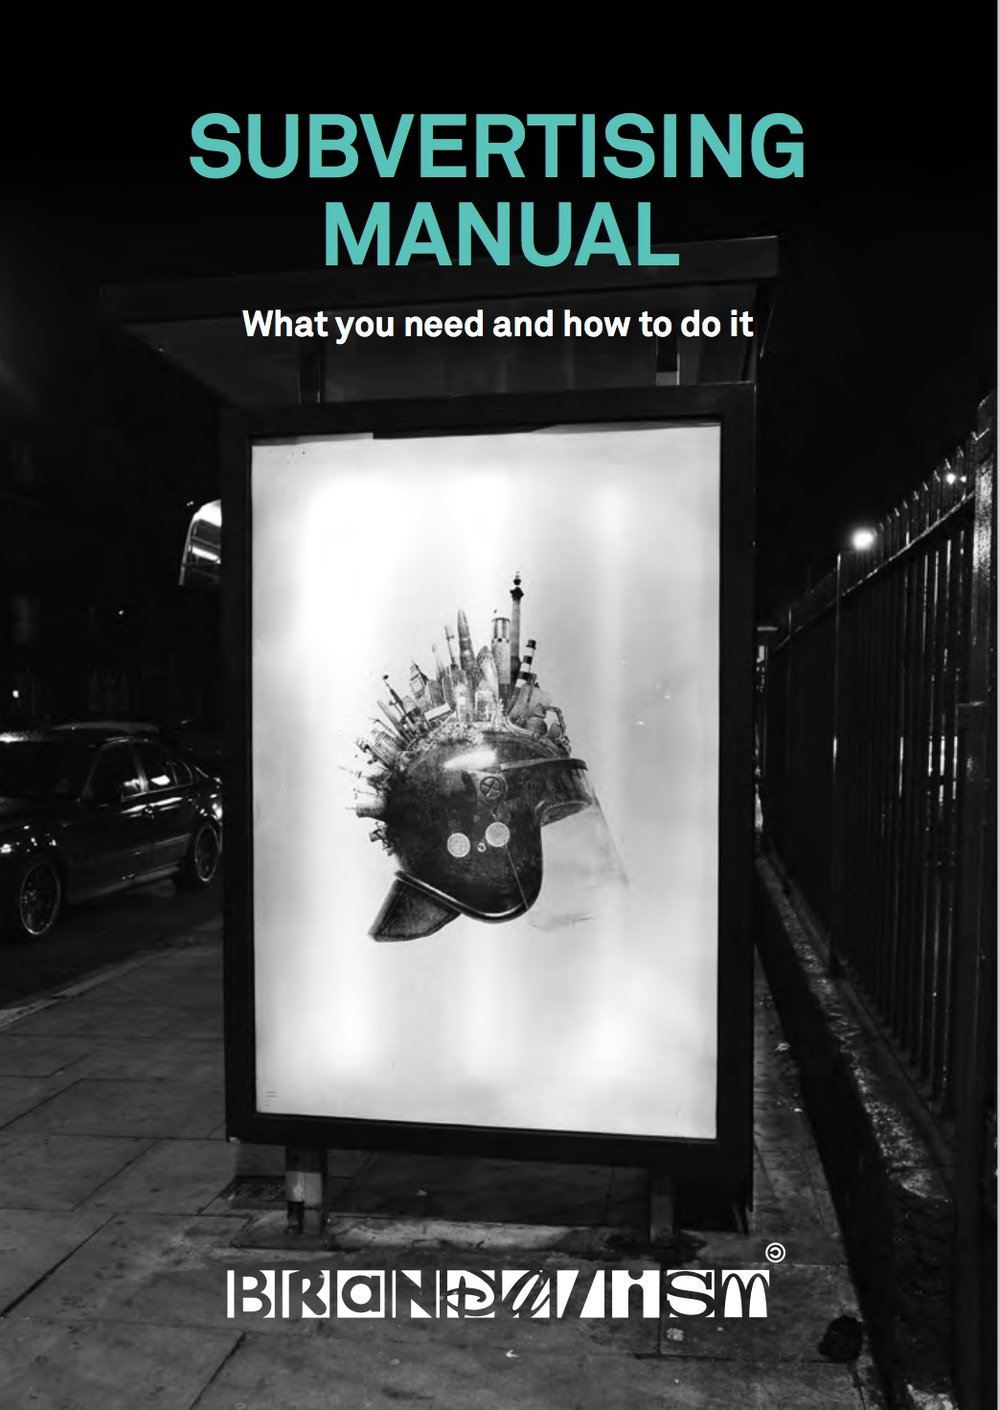 Get a copy of the Subvertising Manual  here